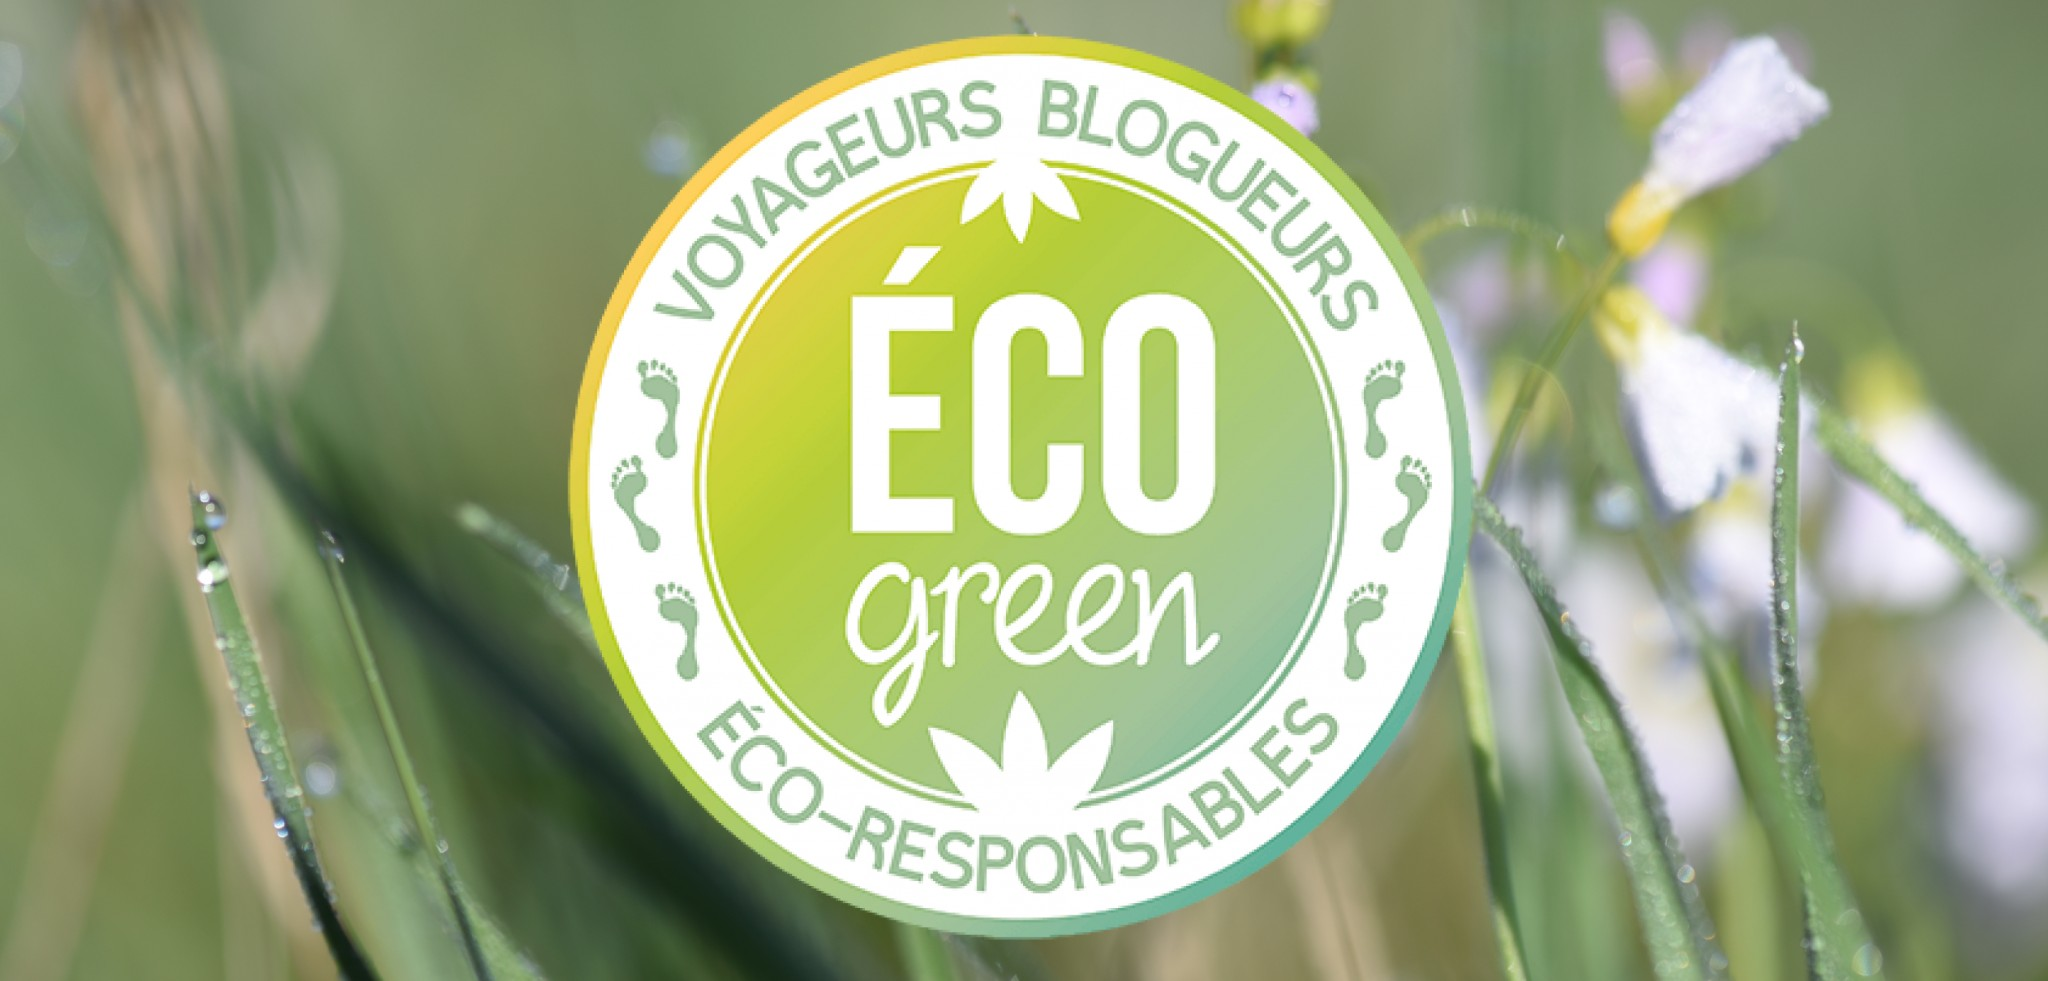 On a rejoint la team Éco'Green !